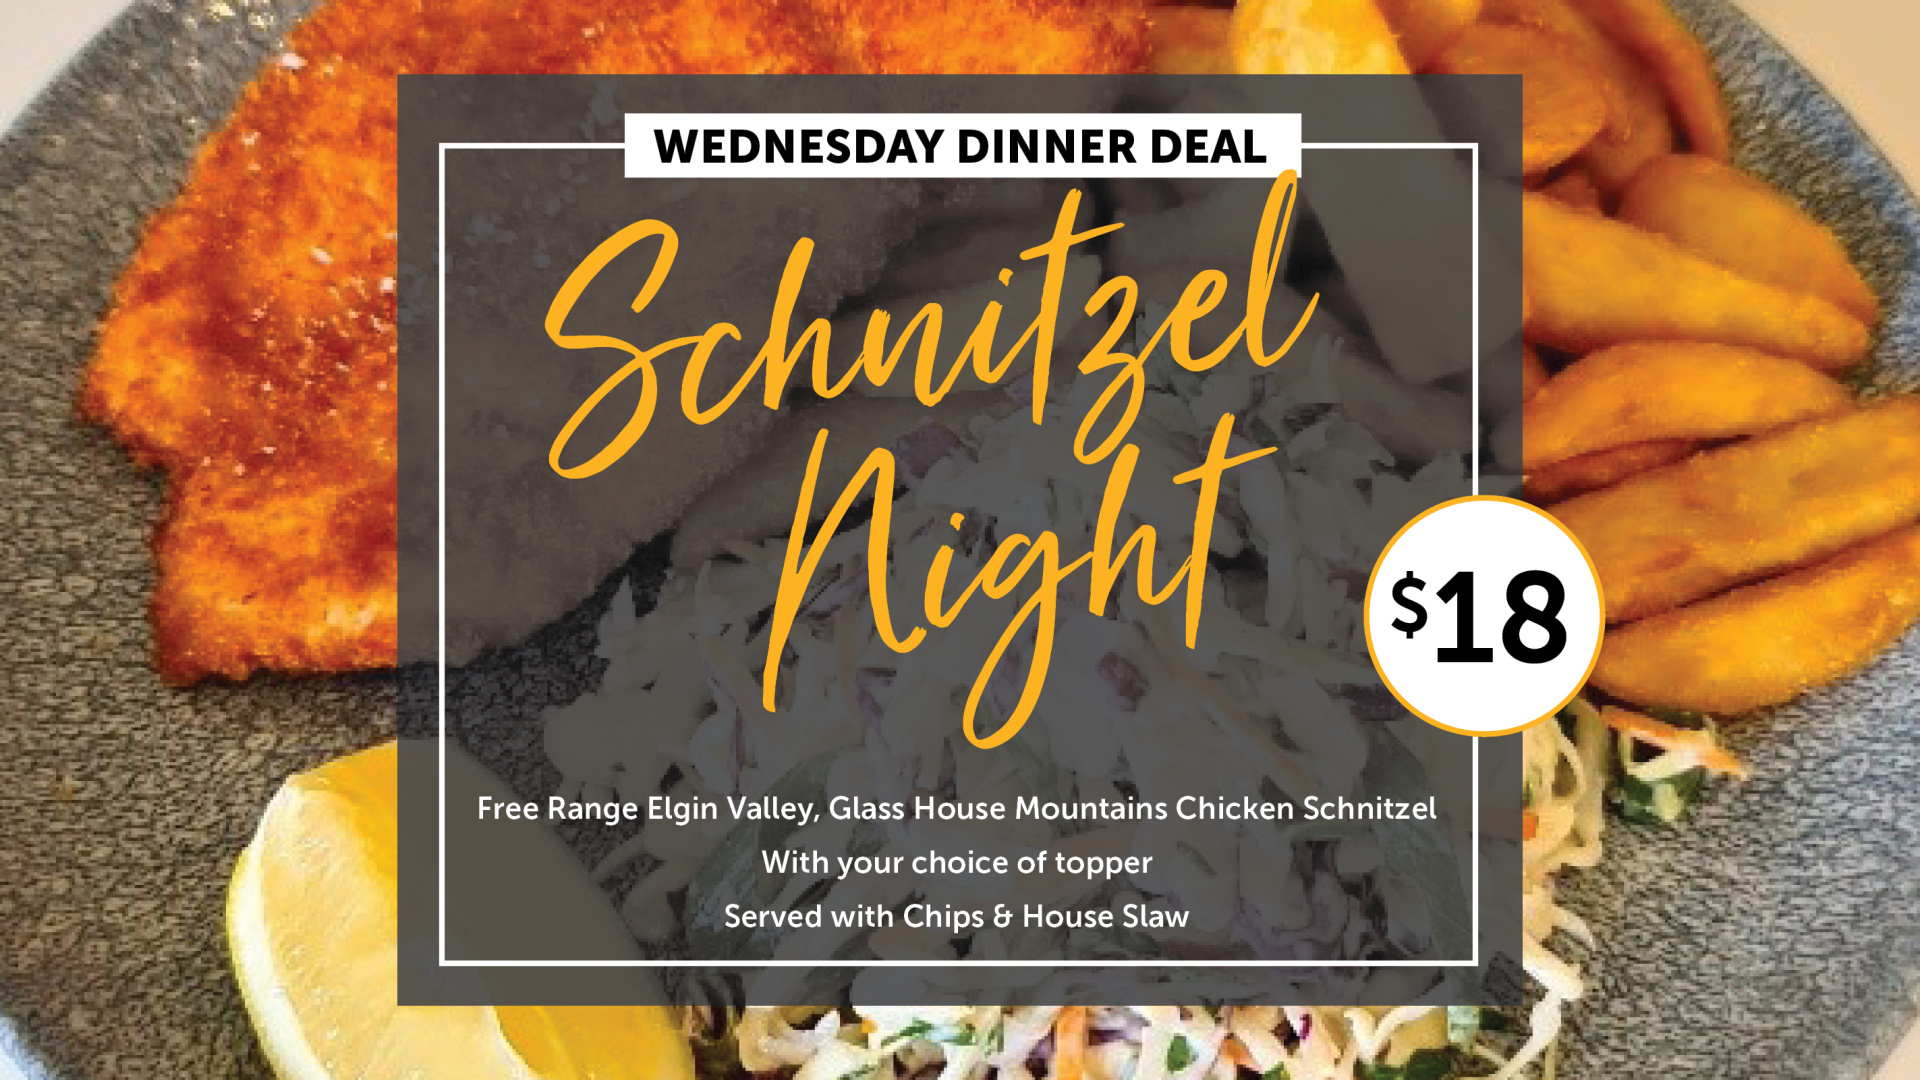 Wednesday Dinner Deal - $18 Schnitzel Night